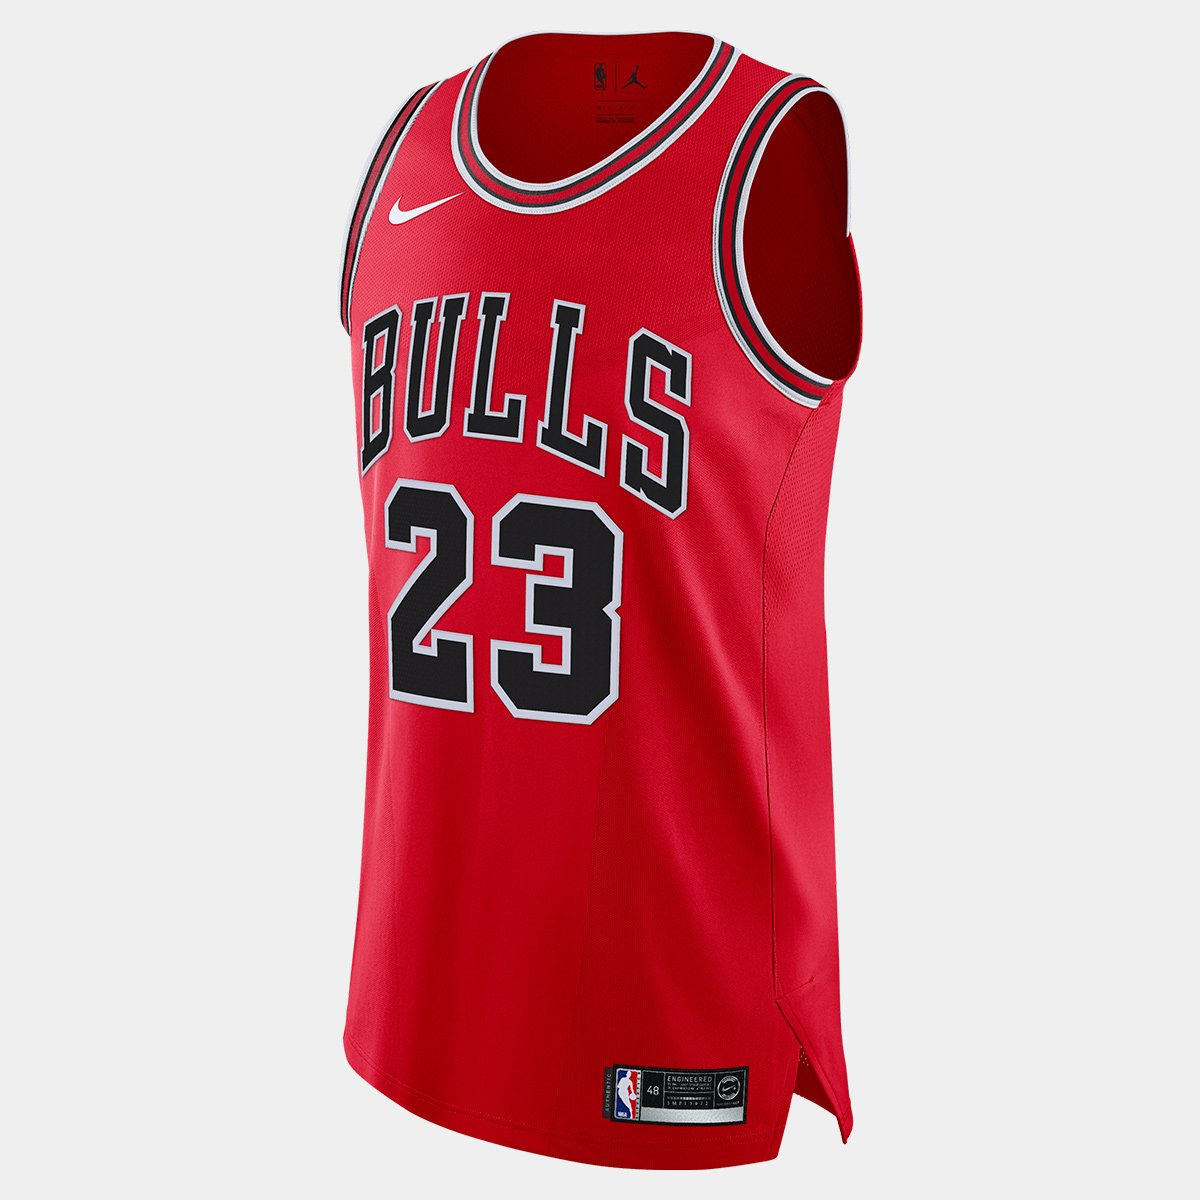 c958198165348 Regata Authentic Nike Chicago Bulls Road Jordan 23 - Compre Agora ...